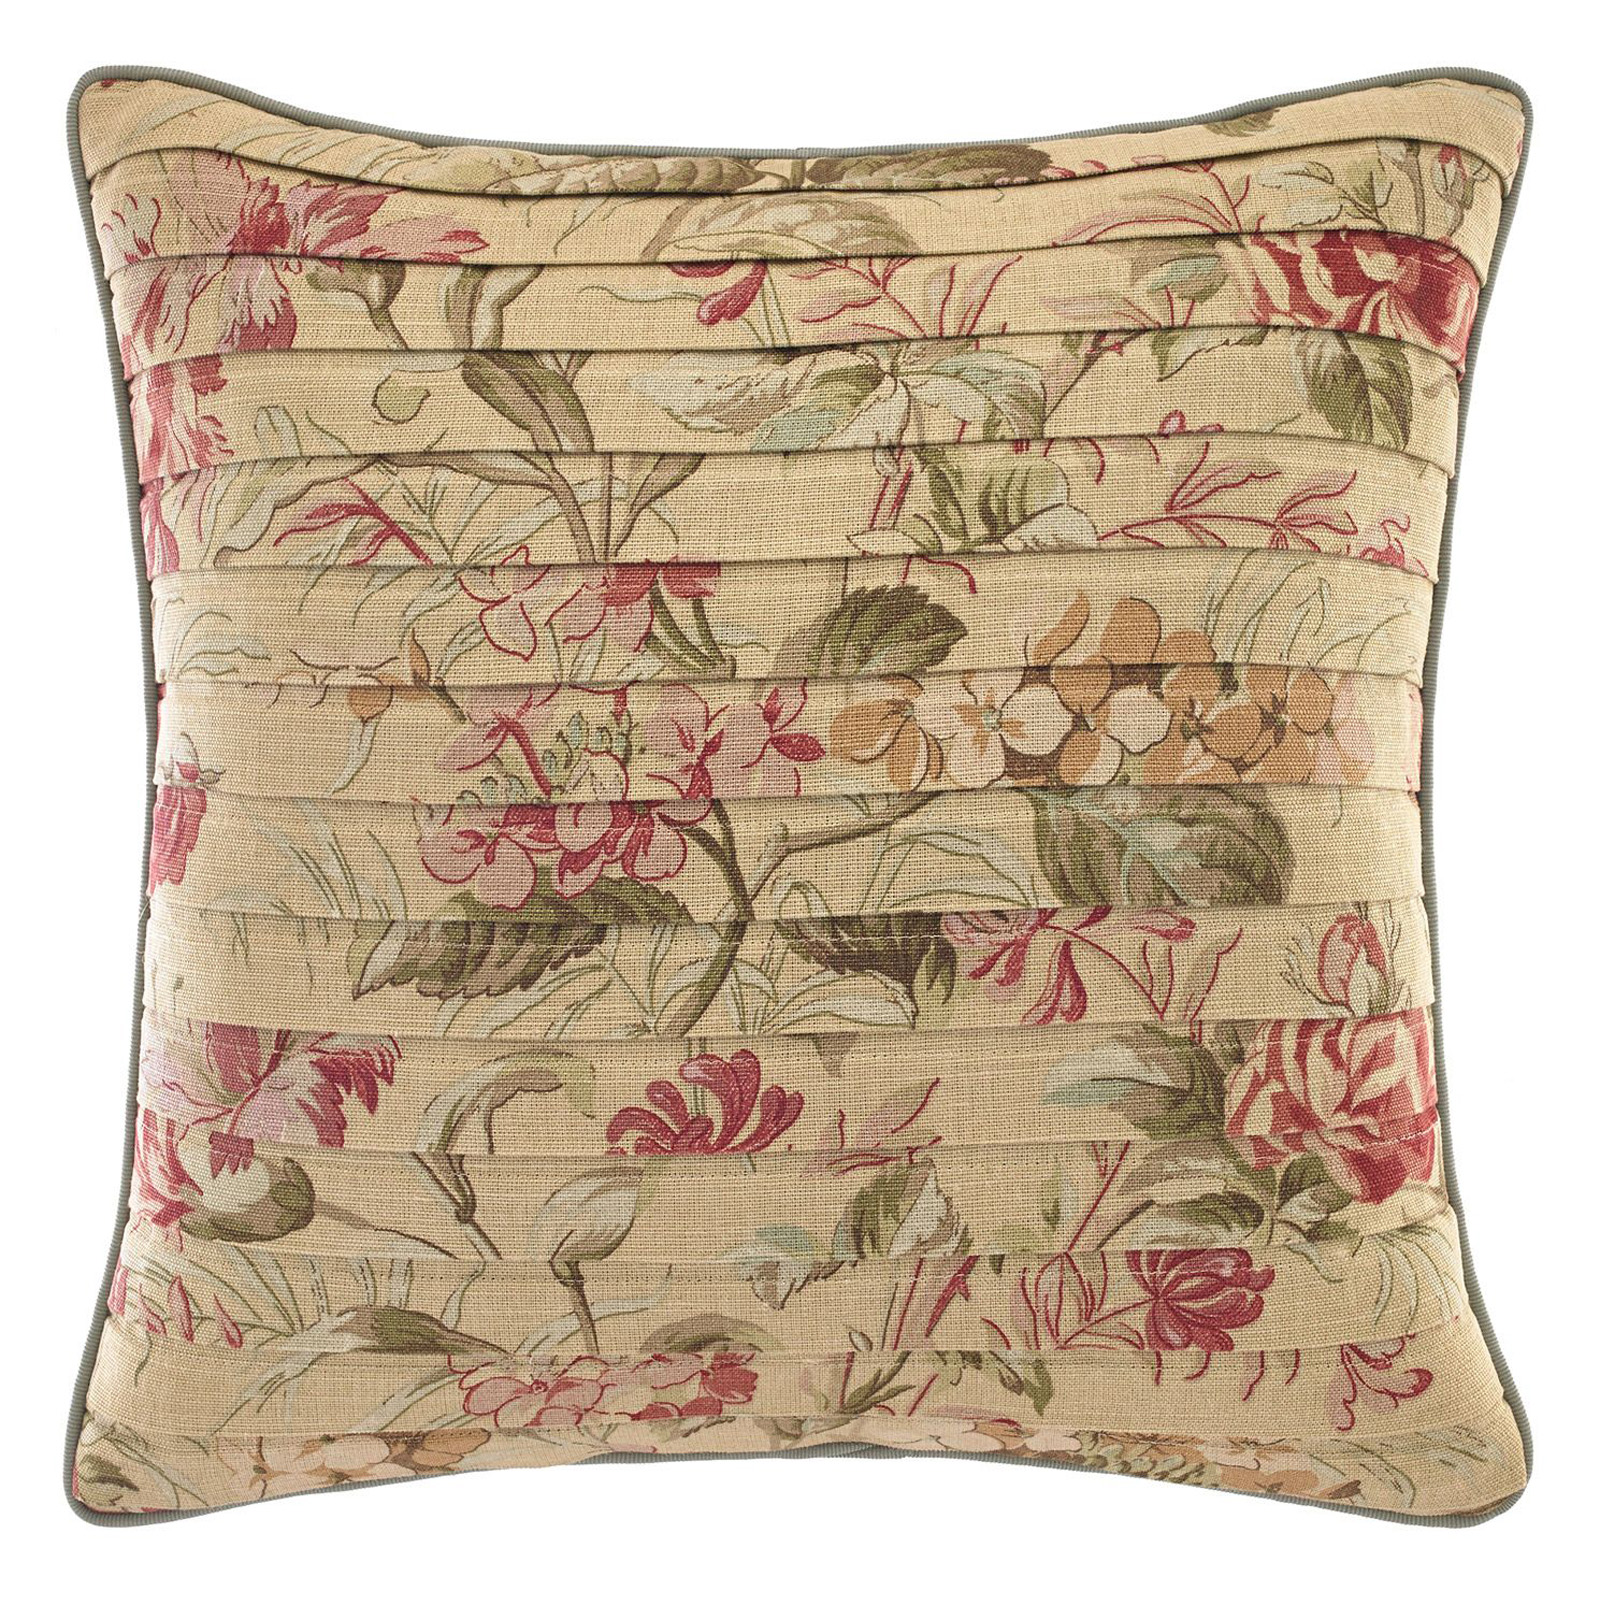 Croscill Cottage Rose Square Throw Pillow Decorative